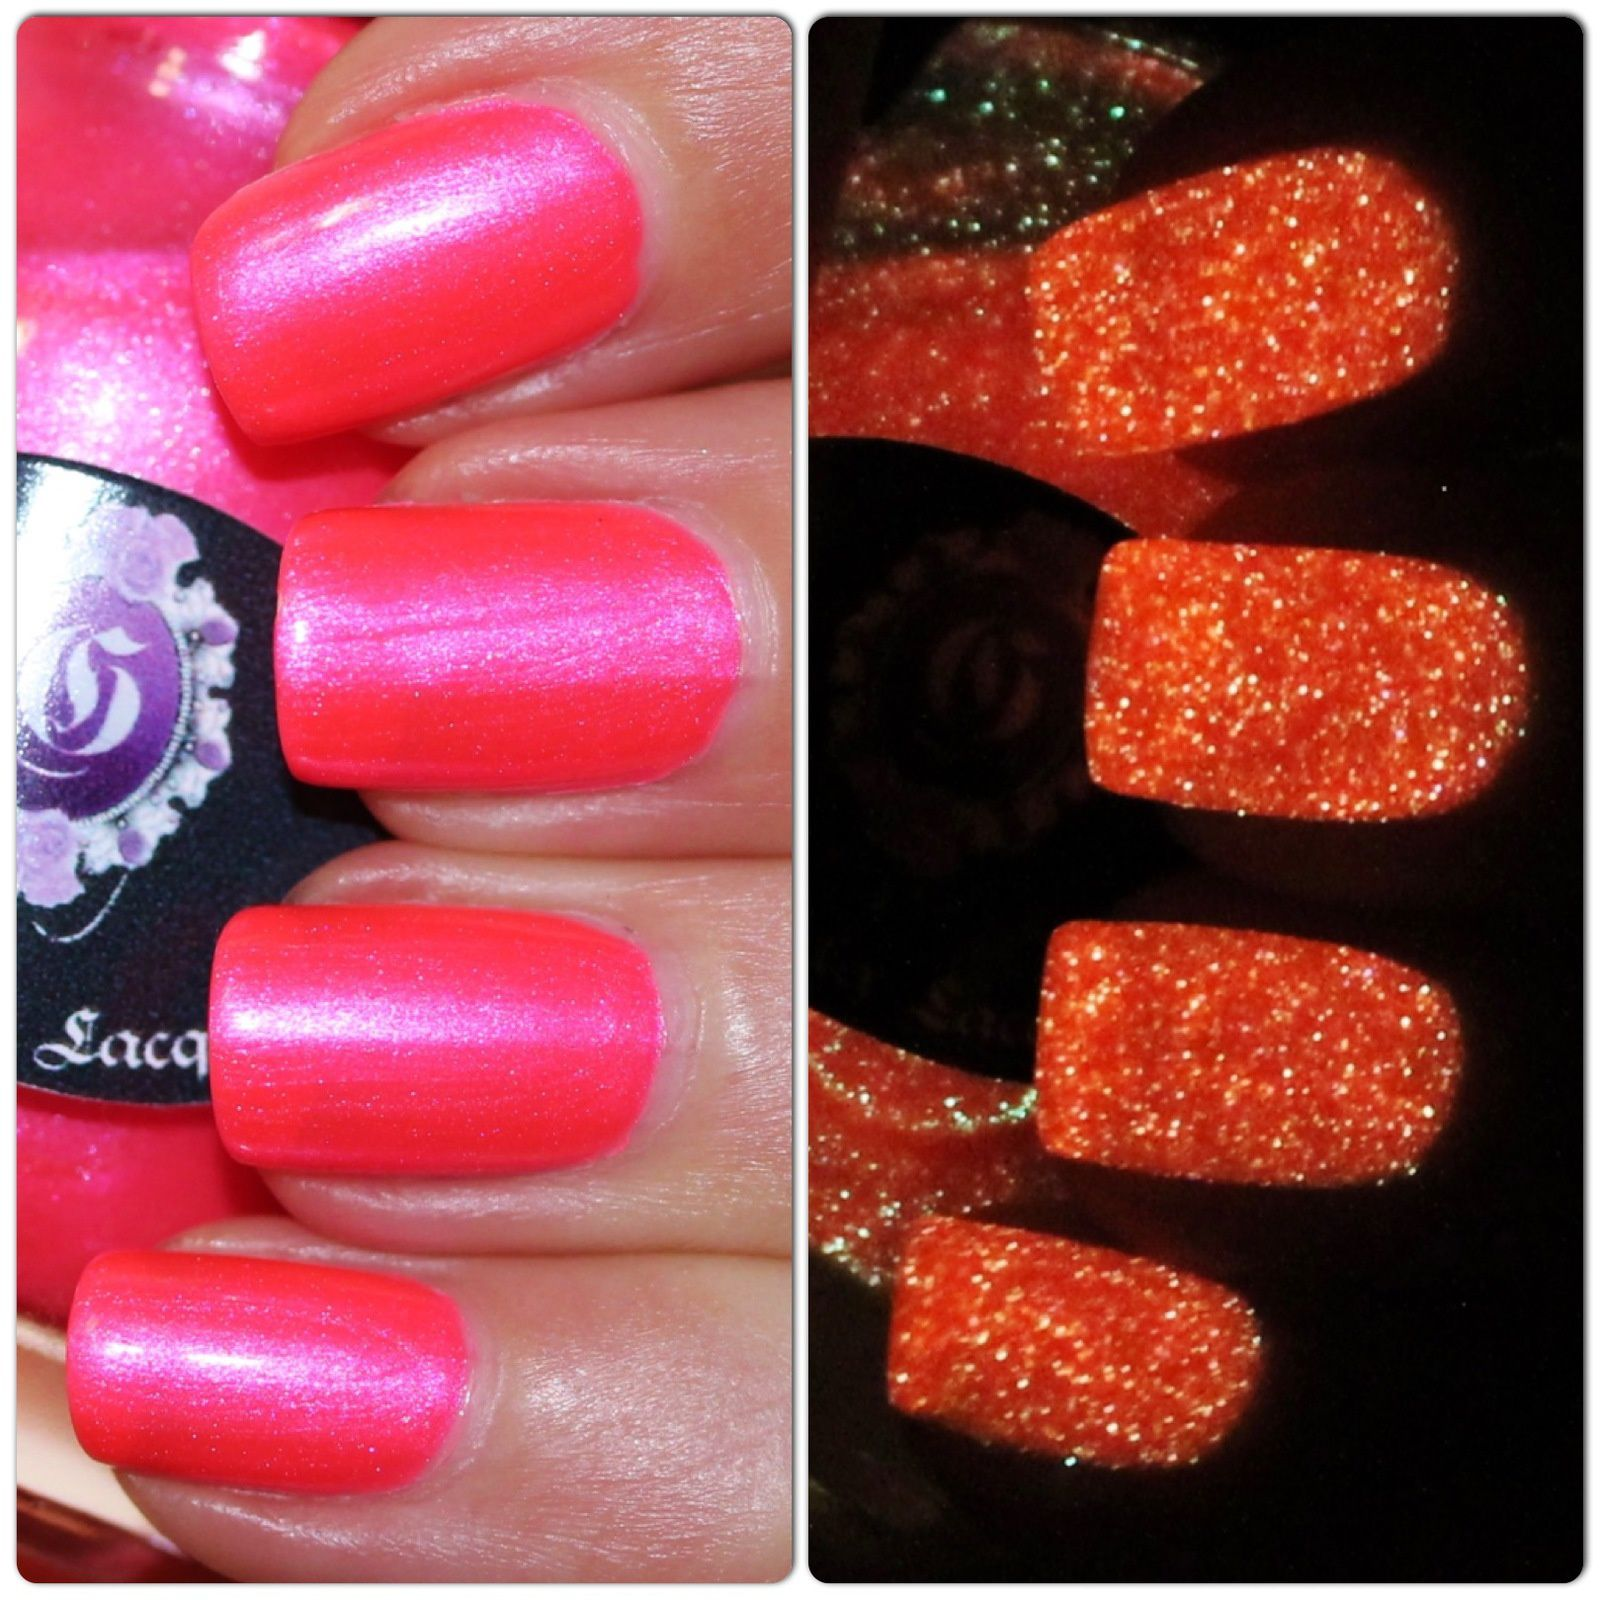 Gothic Gala Lacquers Blushing Bodies (Glows in the Dark)